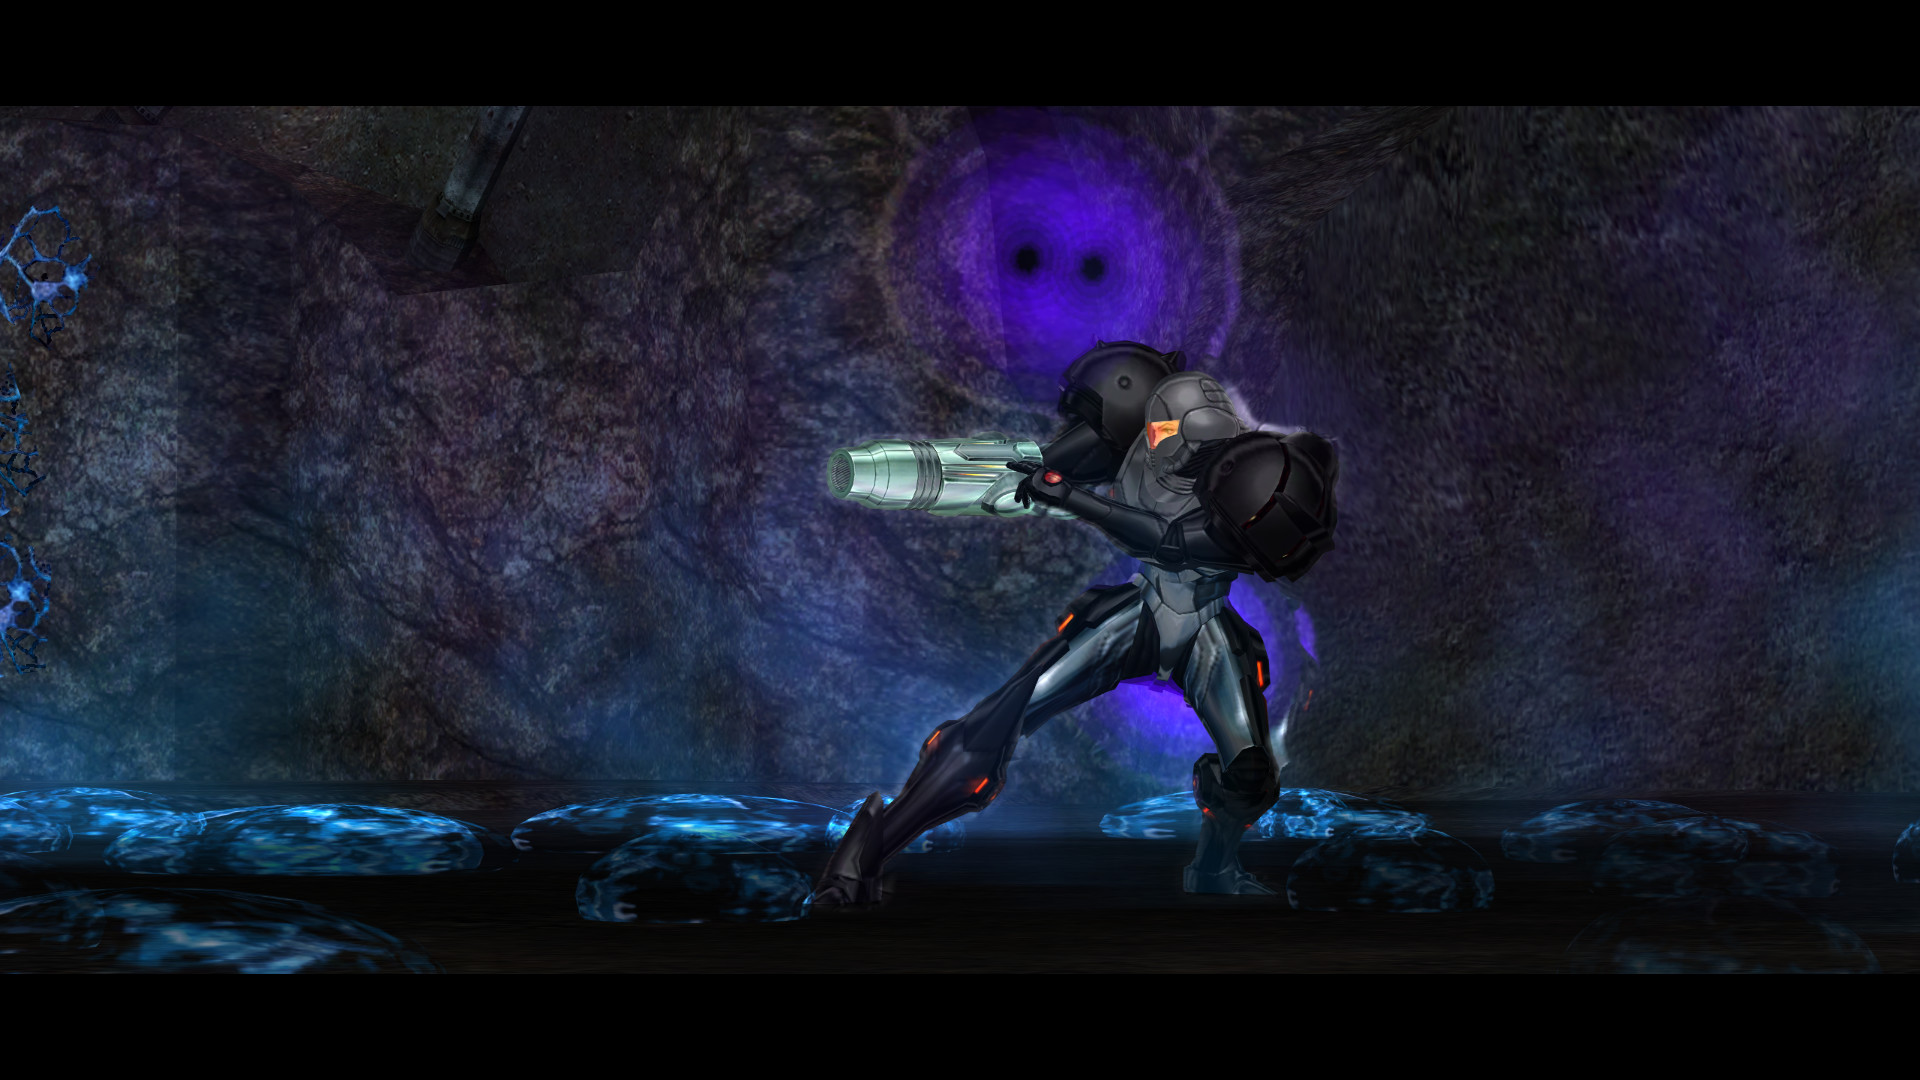 1920x1080 Explore More Wallpapers in the Metroid Prime Subcategory!